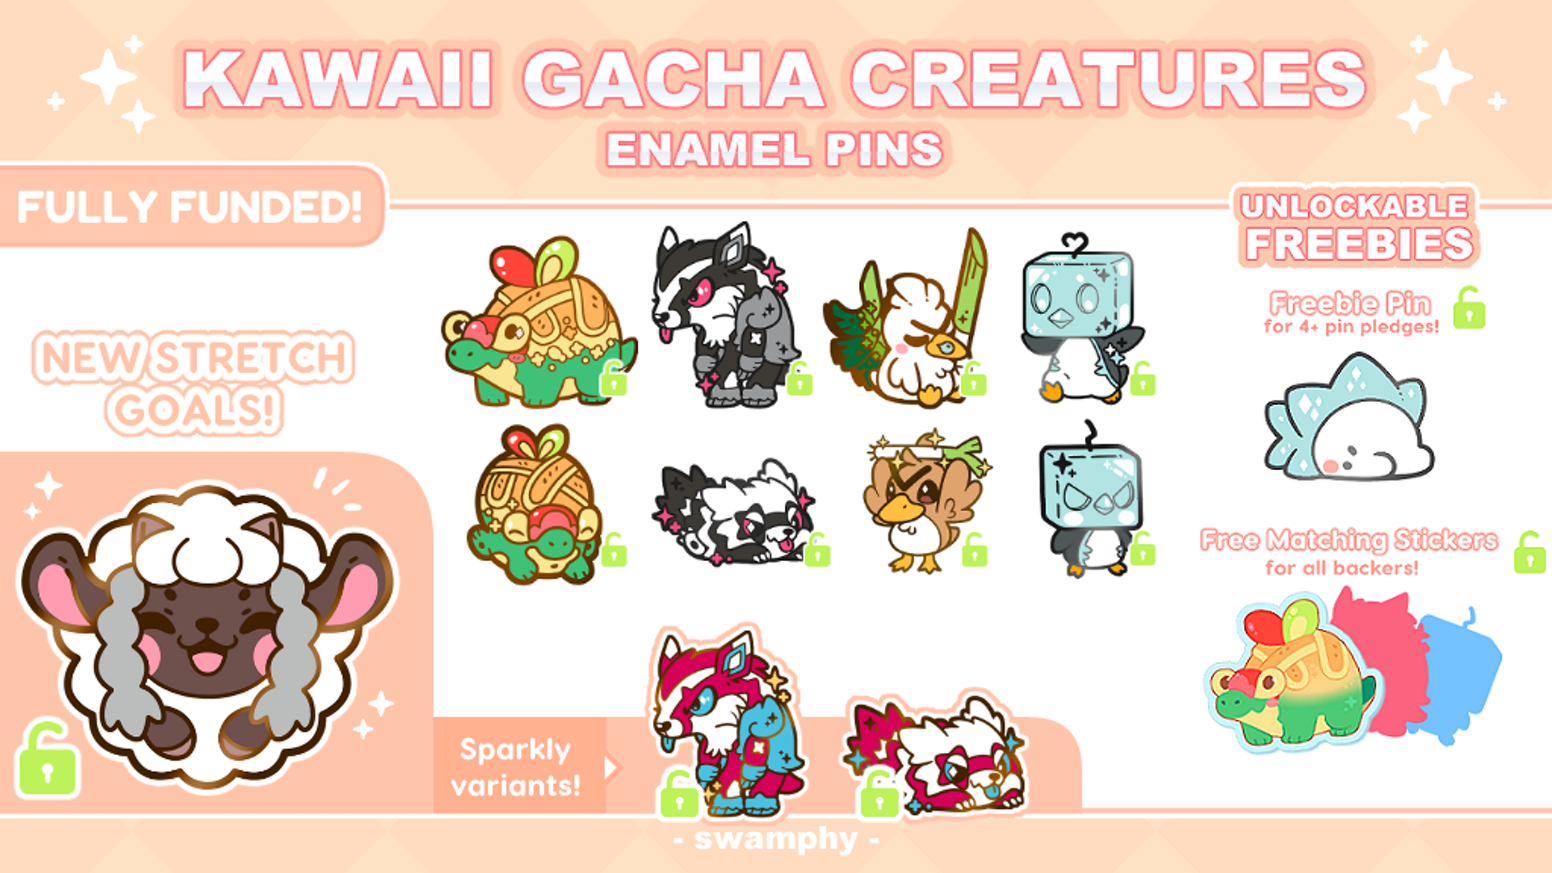 +.º✧ A collection of a variety of creatures in the form of cute & expressive little enamel pins! ✧º.+